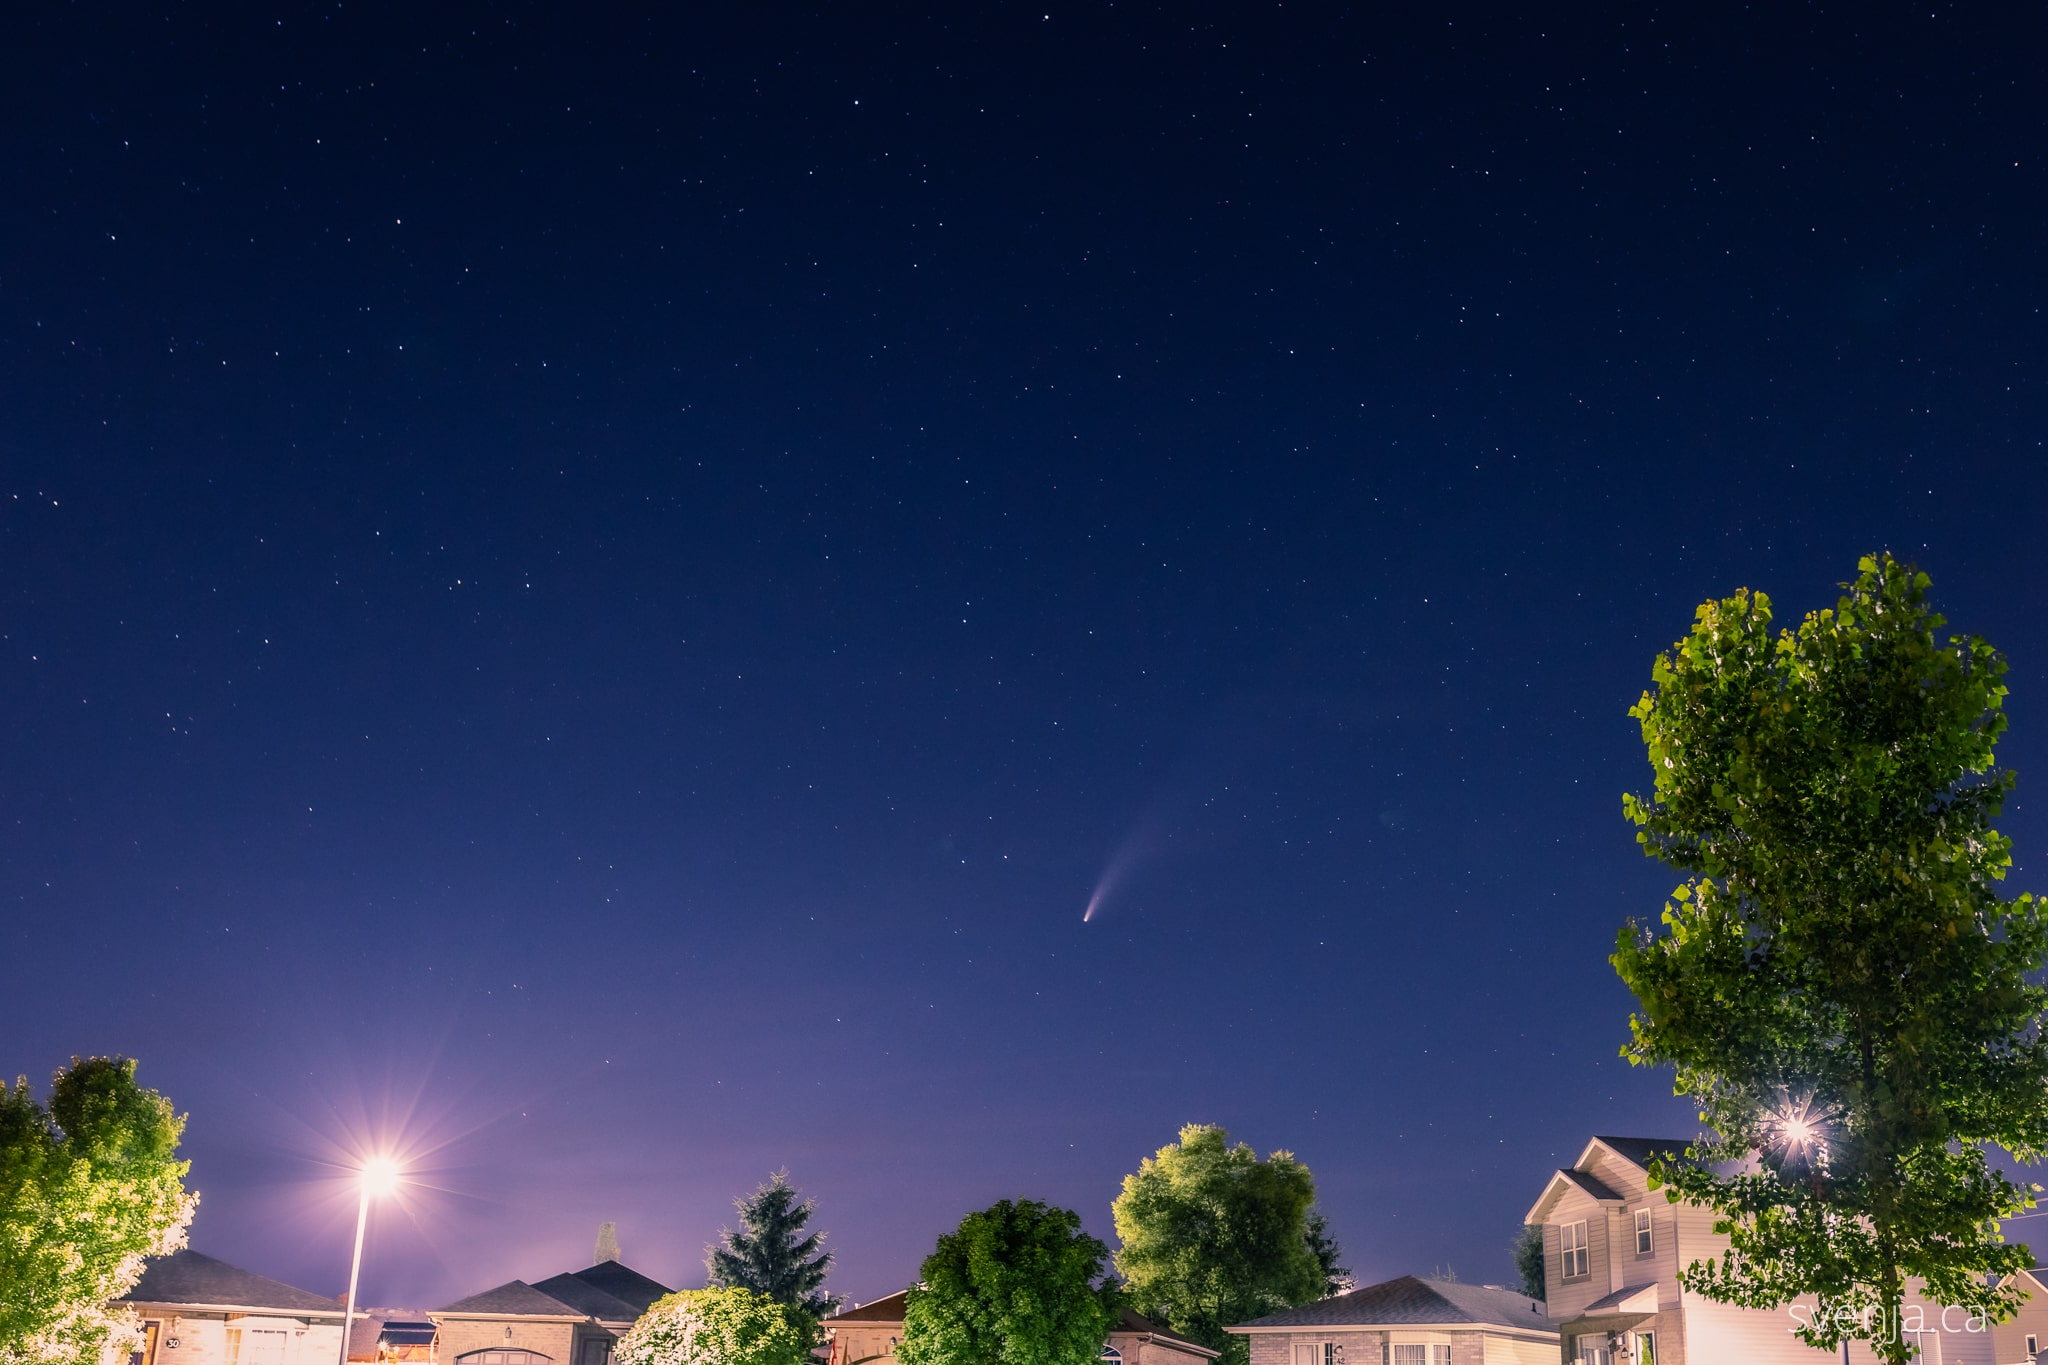 comet Neowise appears in a starry sky above a neighbourhood